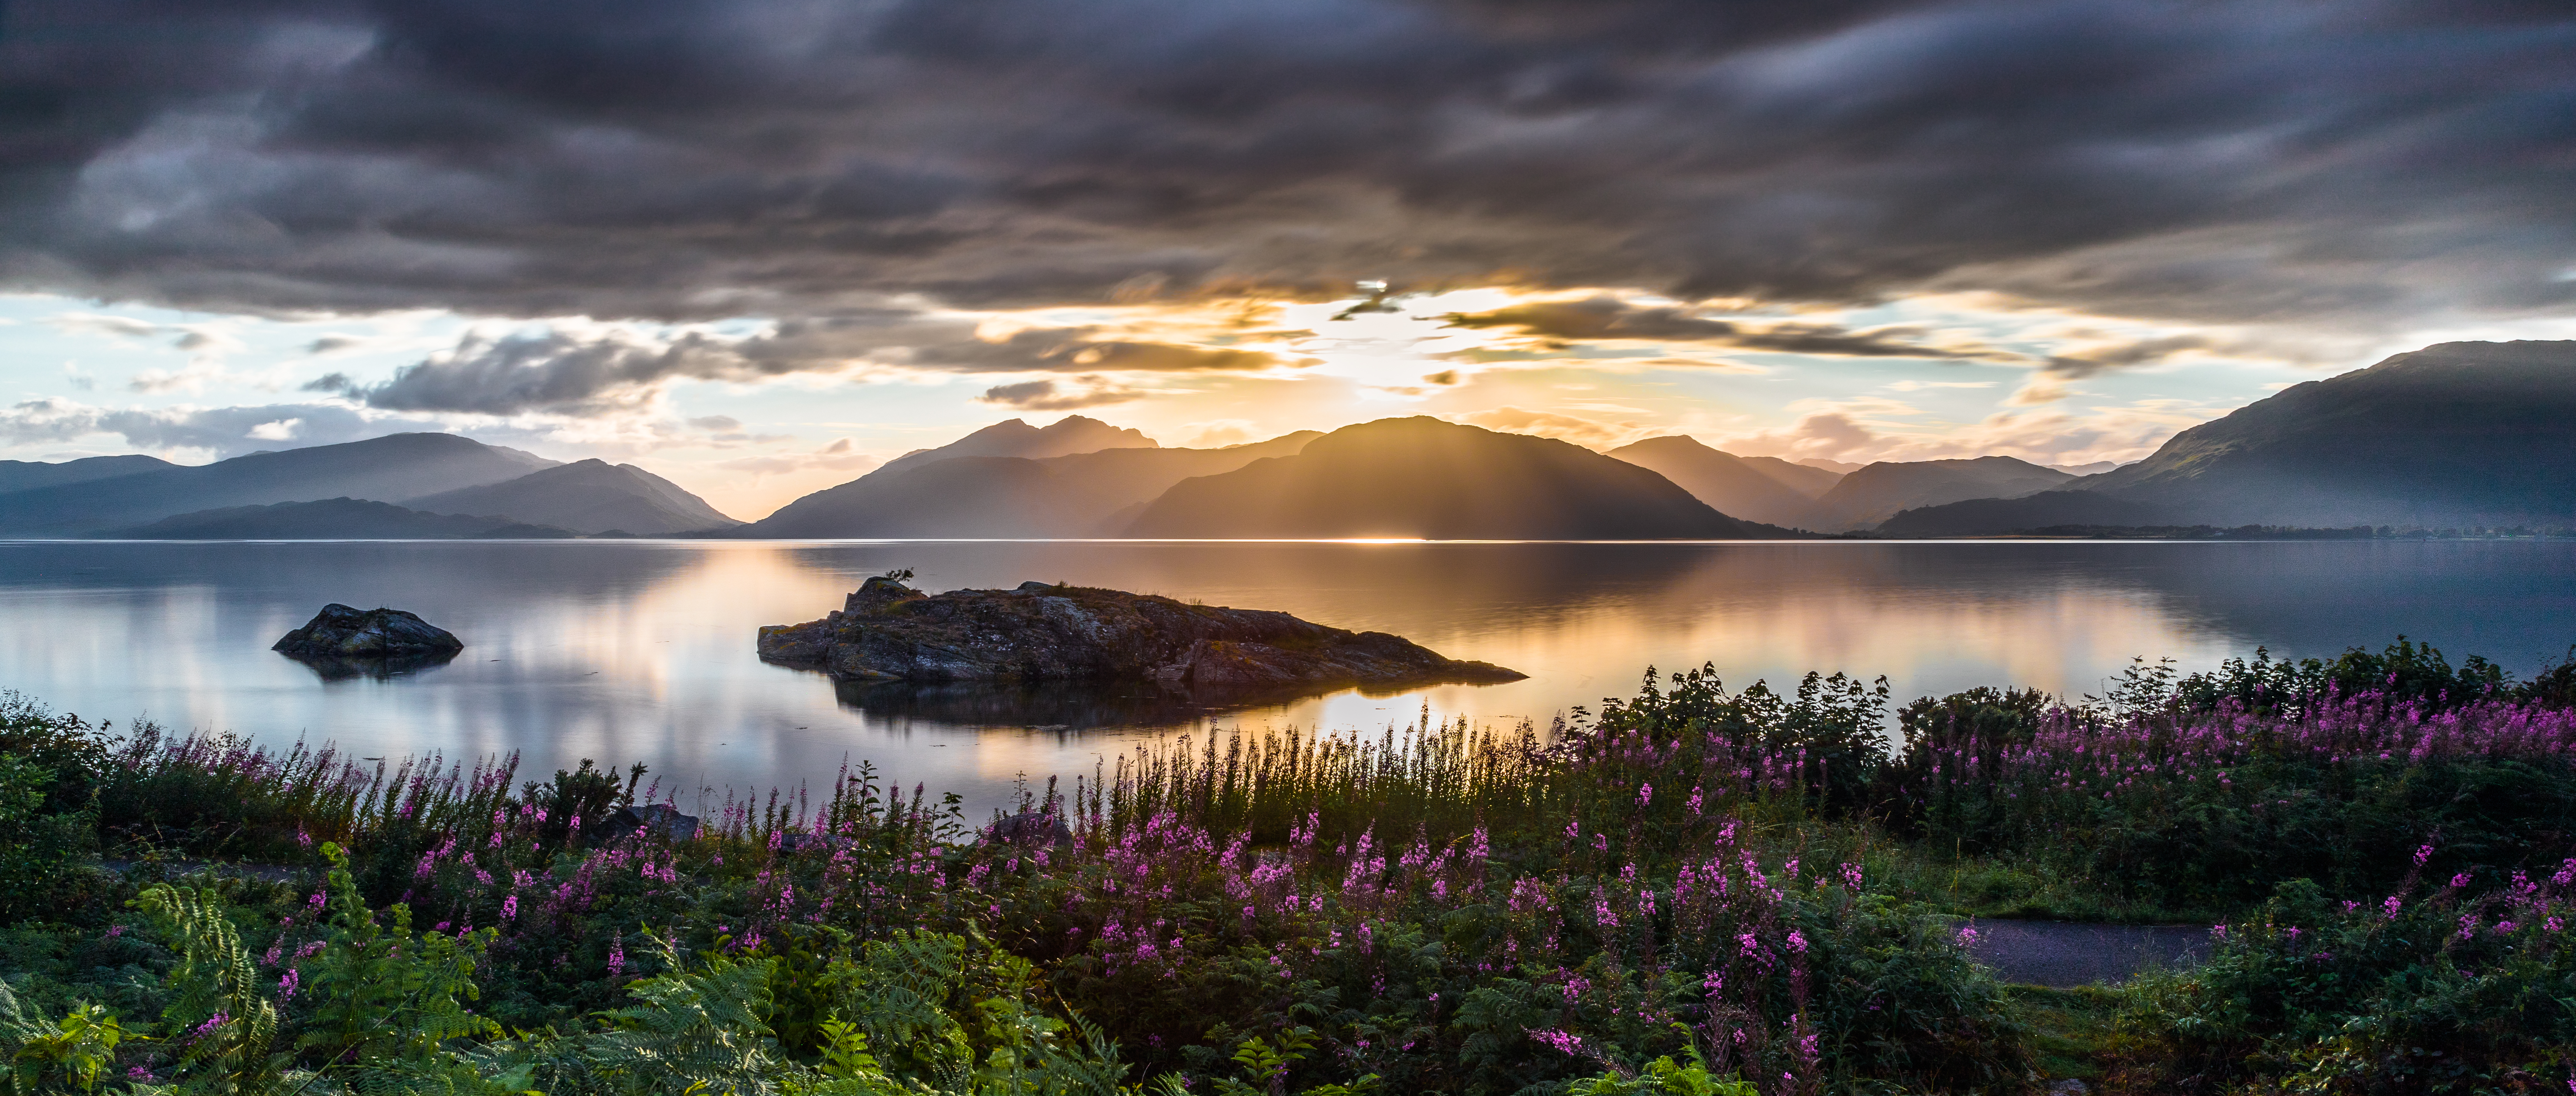 61086 download wallpaper Nature, Sea, Sunset, Sky, Mountains, Flowers screensavers and pictures for free